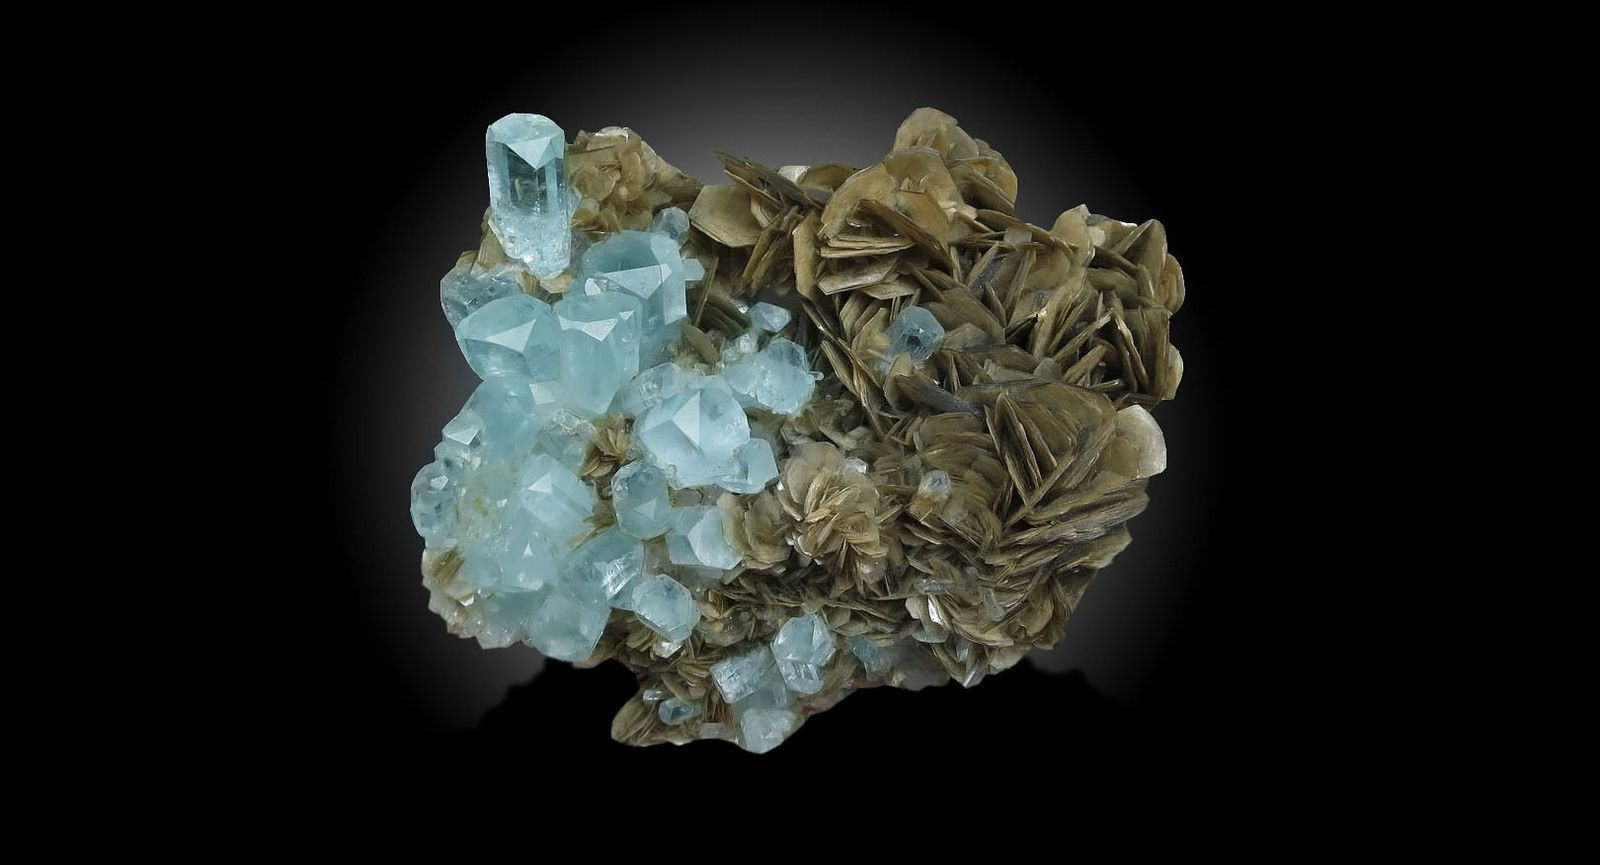 Aquamarine with Muscovite from Pakistan (specien and Photo by Dawood Ali Shah)